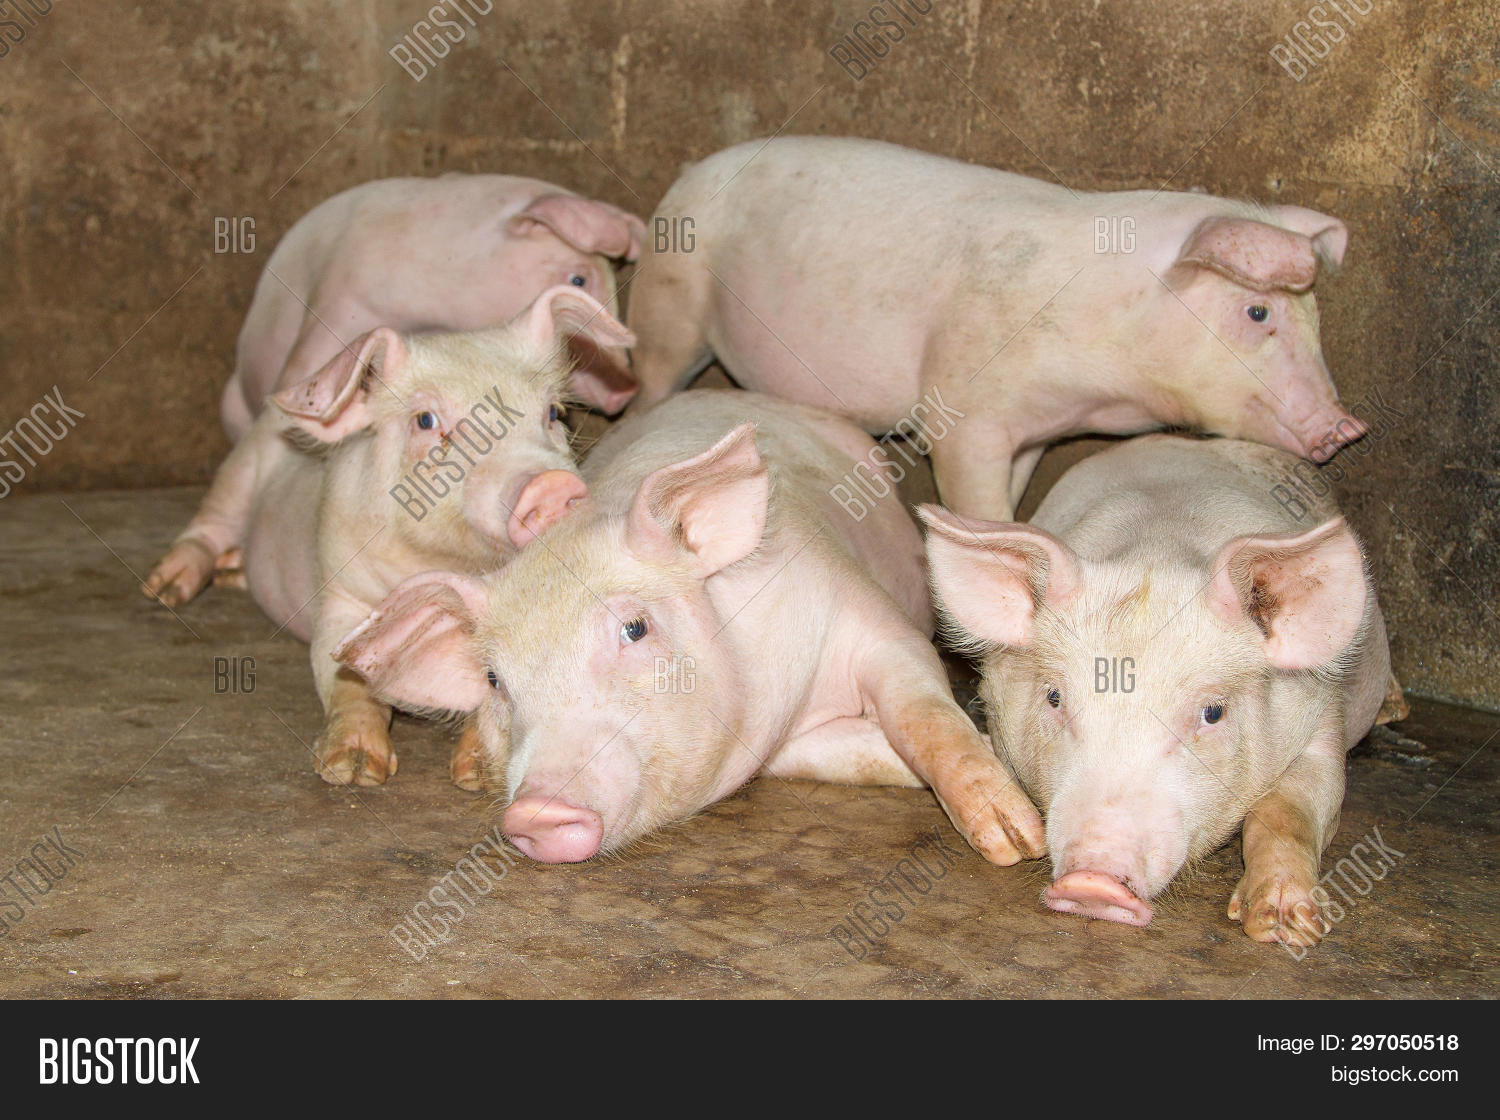 Small Piglet Farm  Image & Photo (Free Trial) | Bigstock